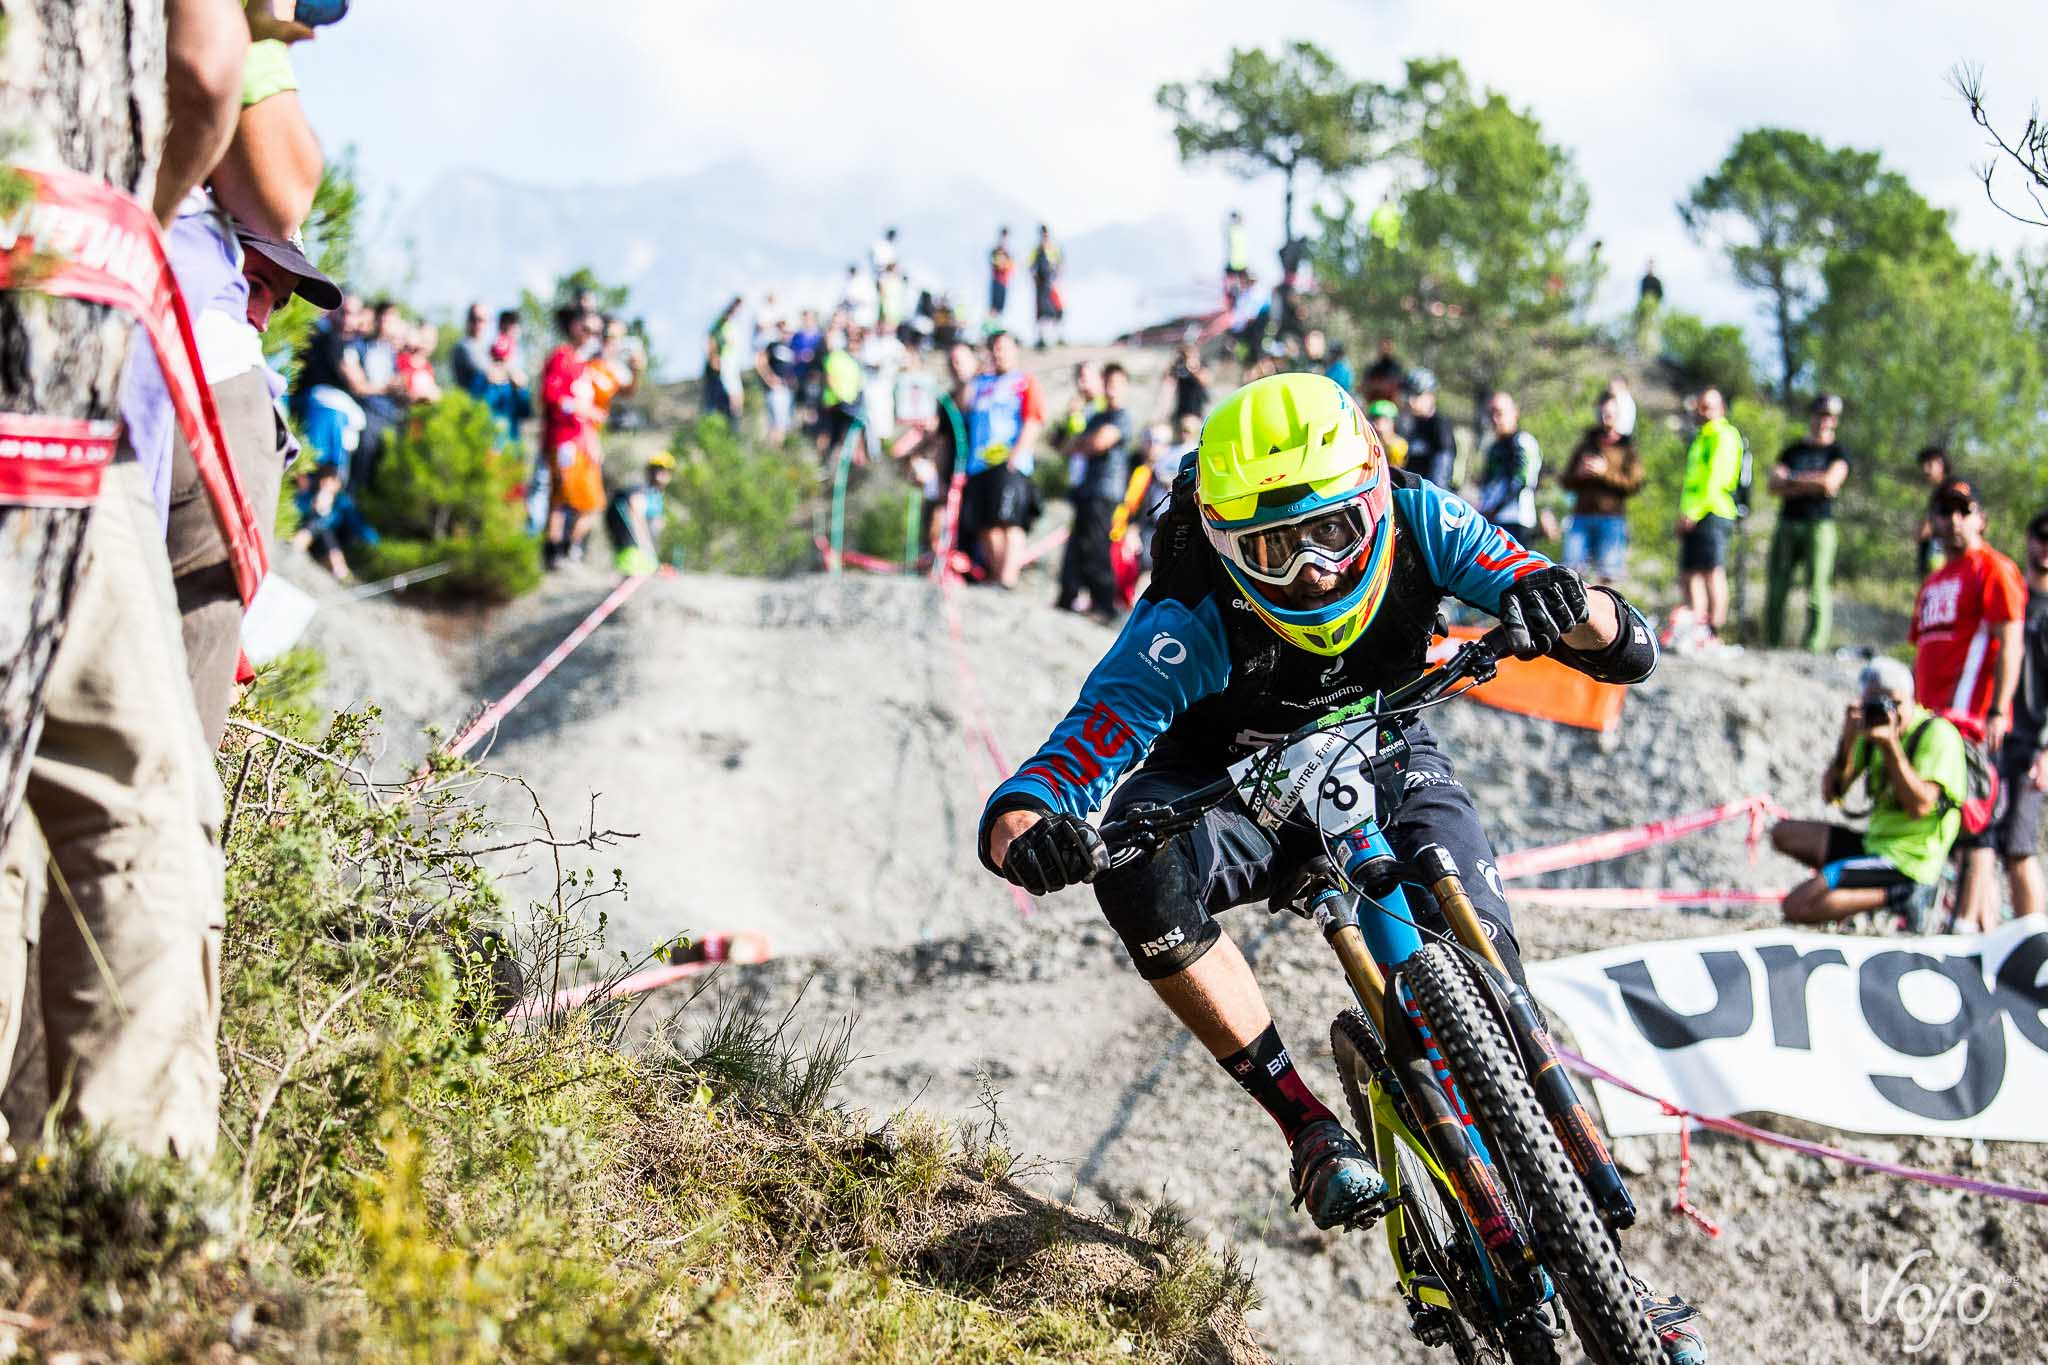 Enduro_World_Series_7_Spain_Ainsa_Zona_Zero_2015_Copyright_VojoMag-12